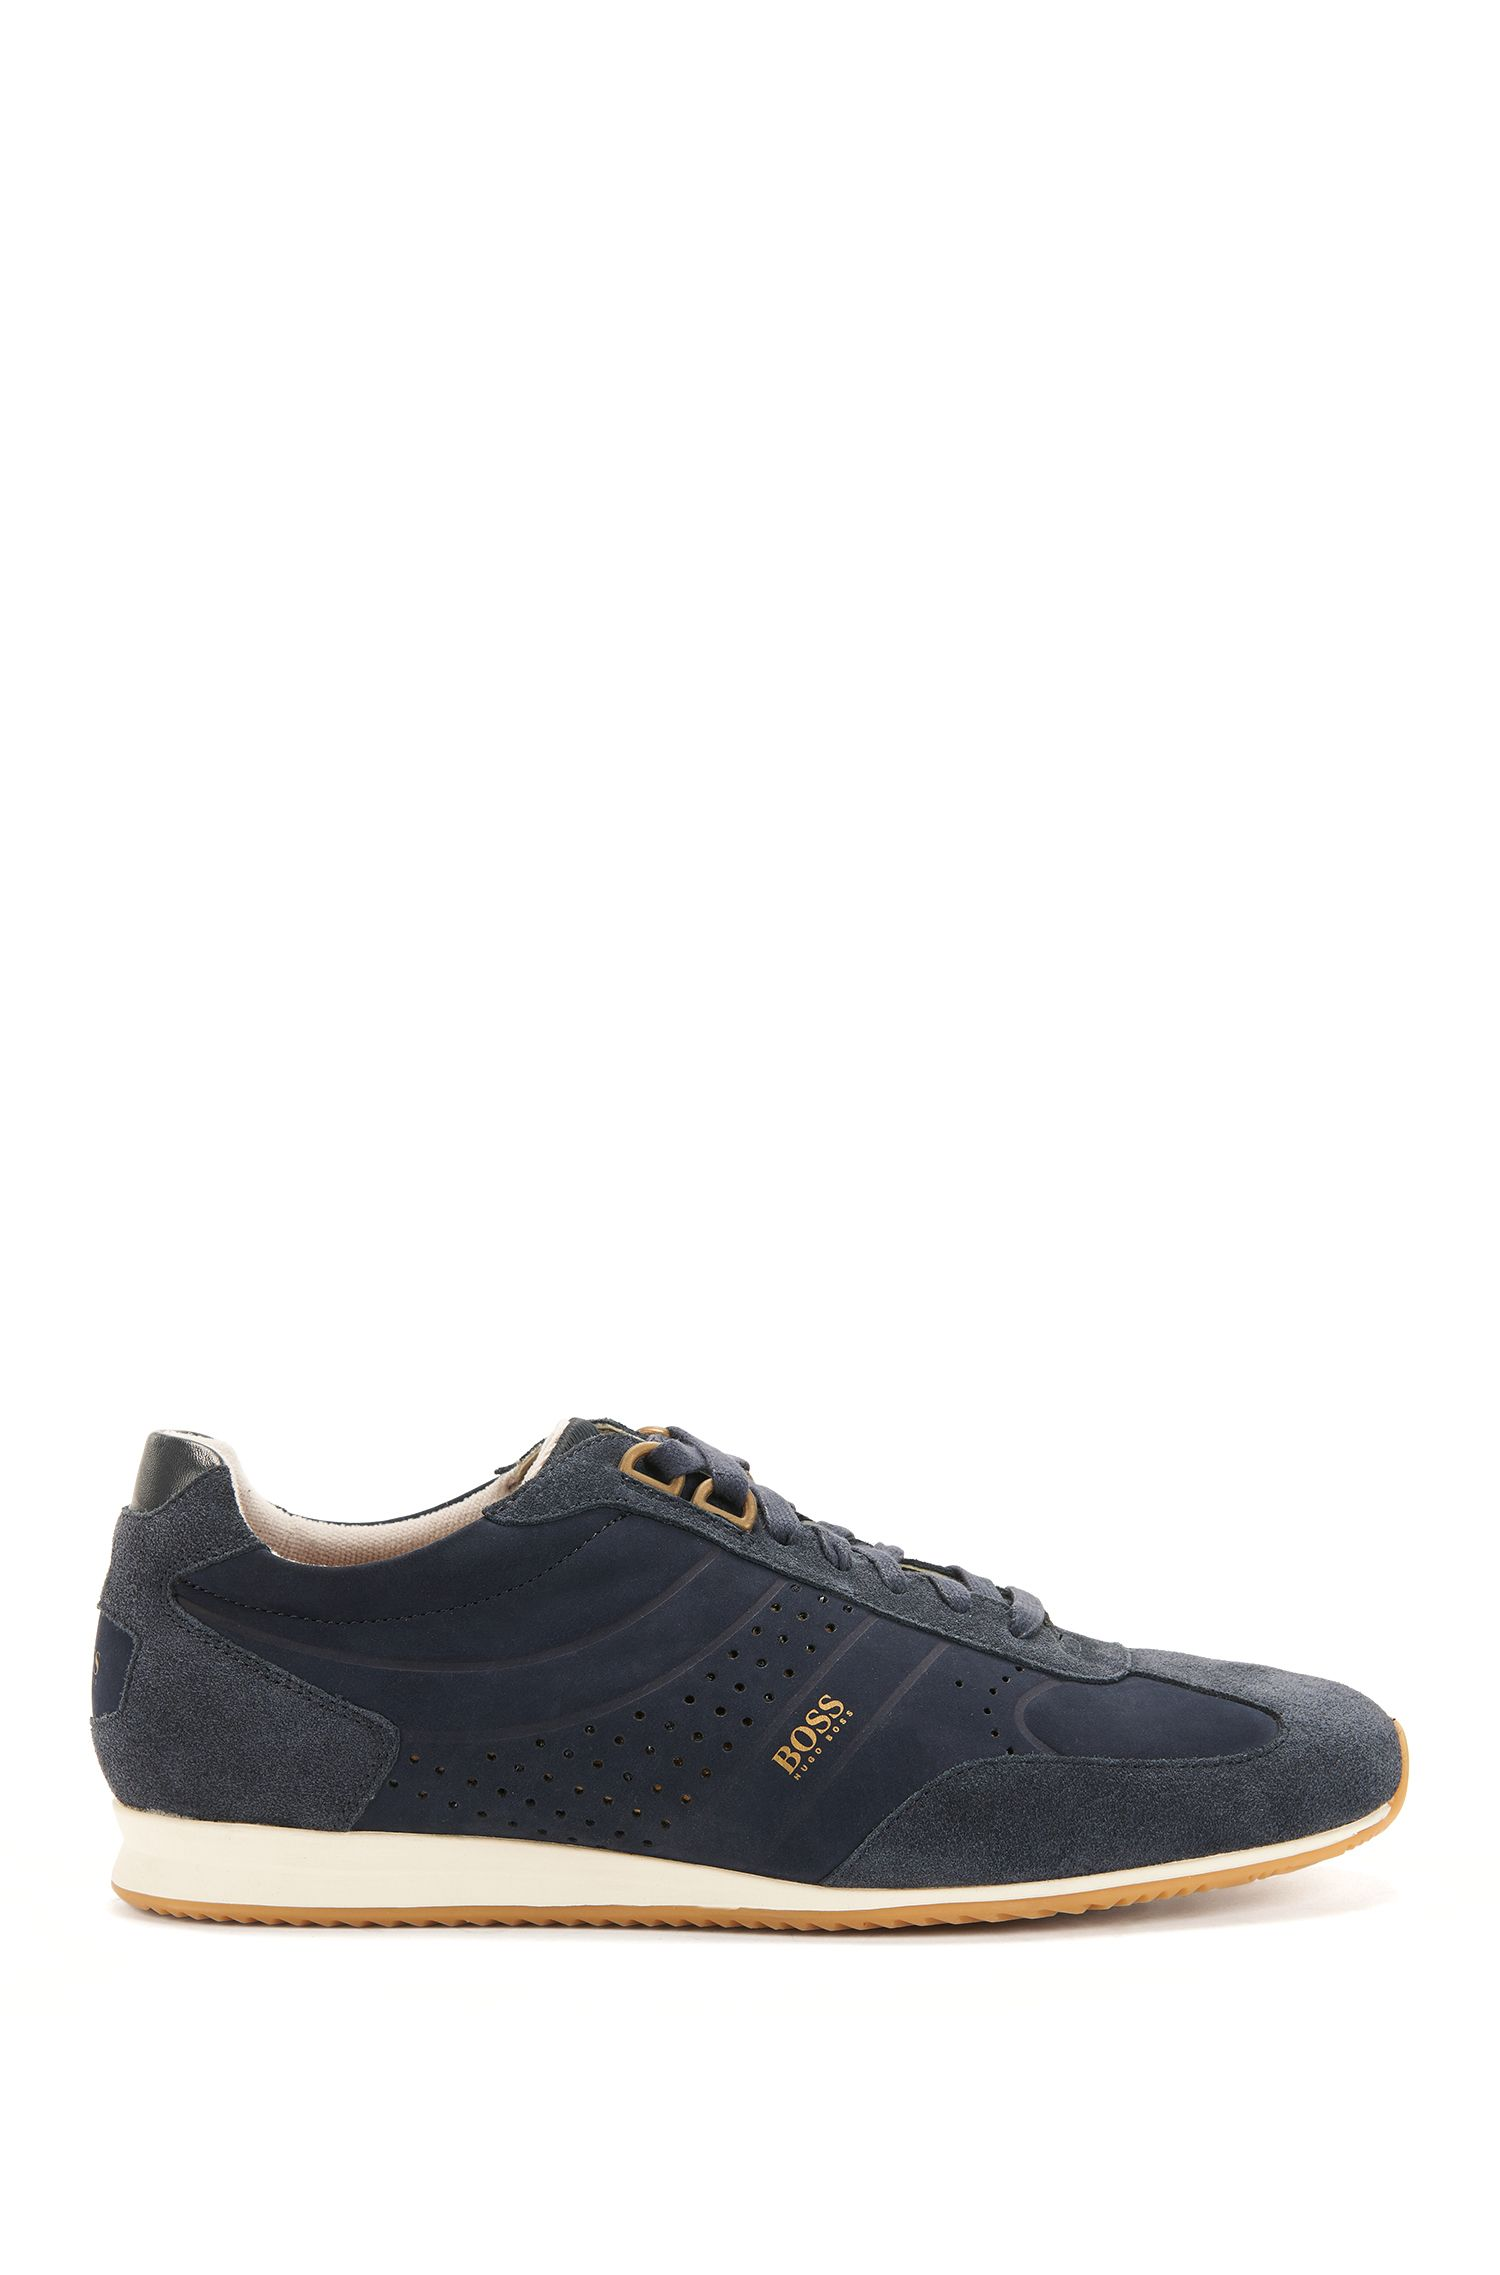 Low-top trainers in nubuck leather